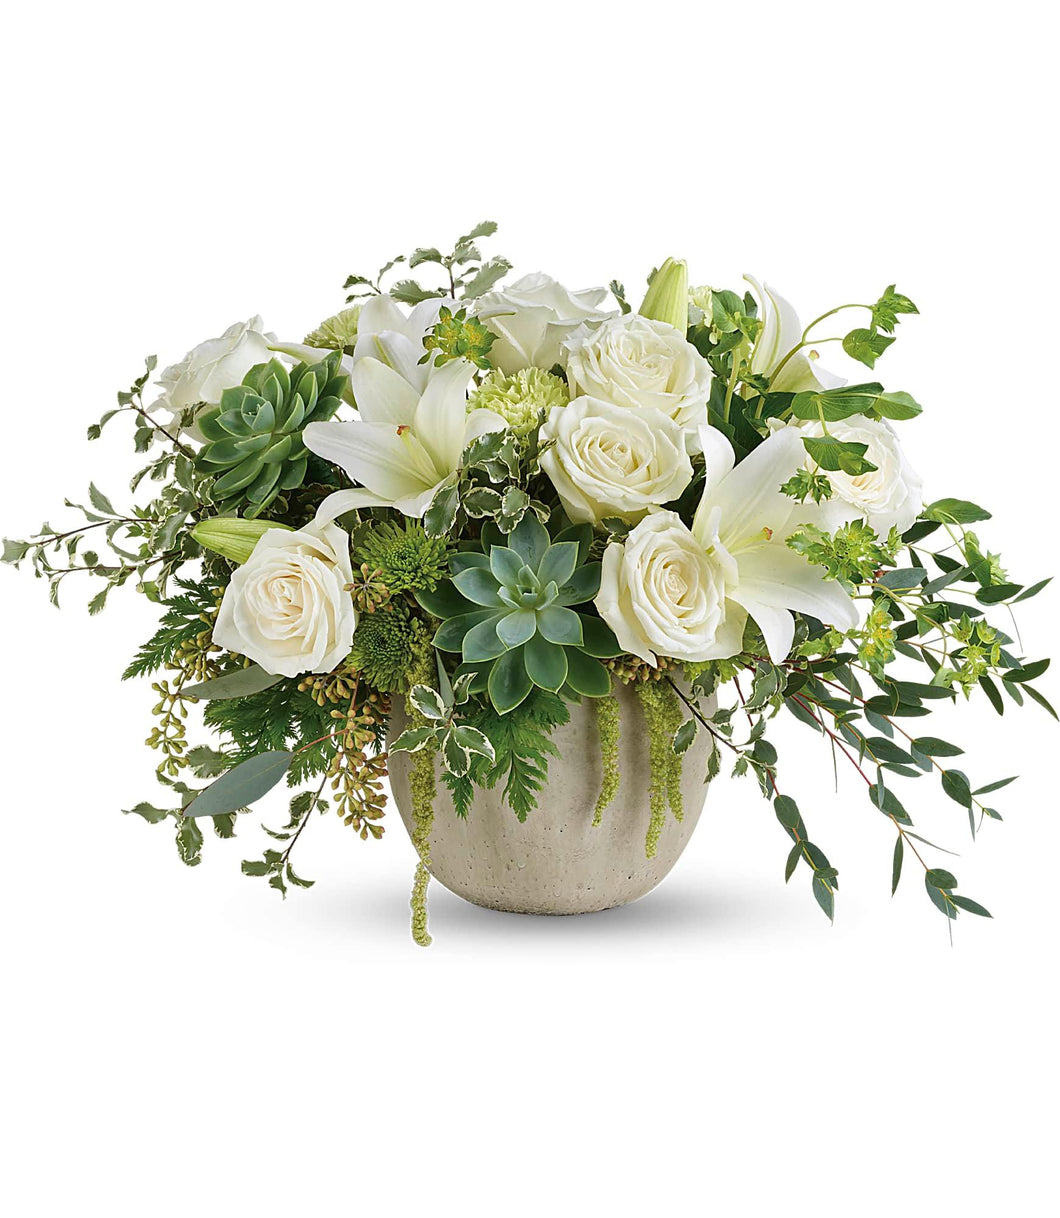 Prescott Florist - Flourishing Beauty Bouquet Floral Arrangement - Bowen's Botanicals